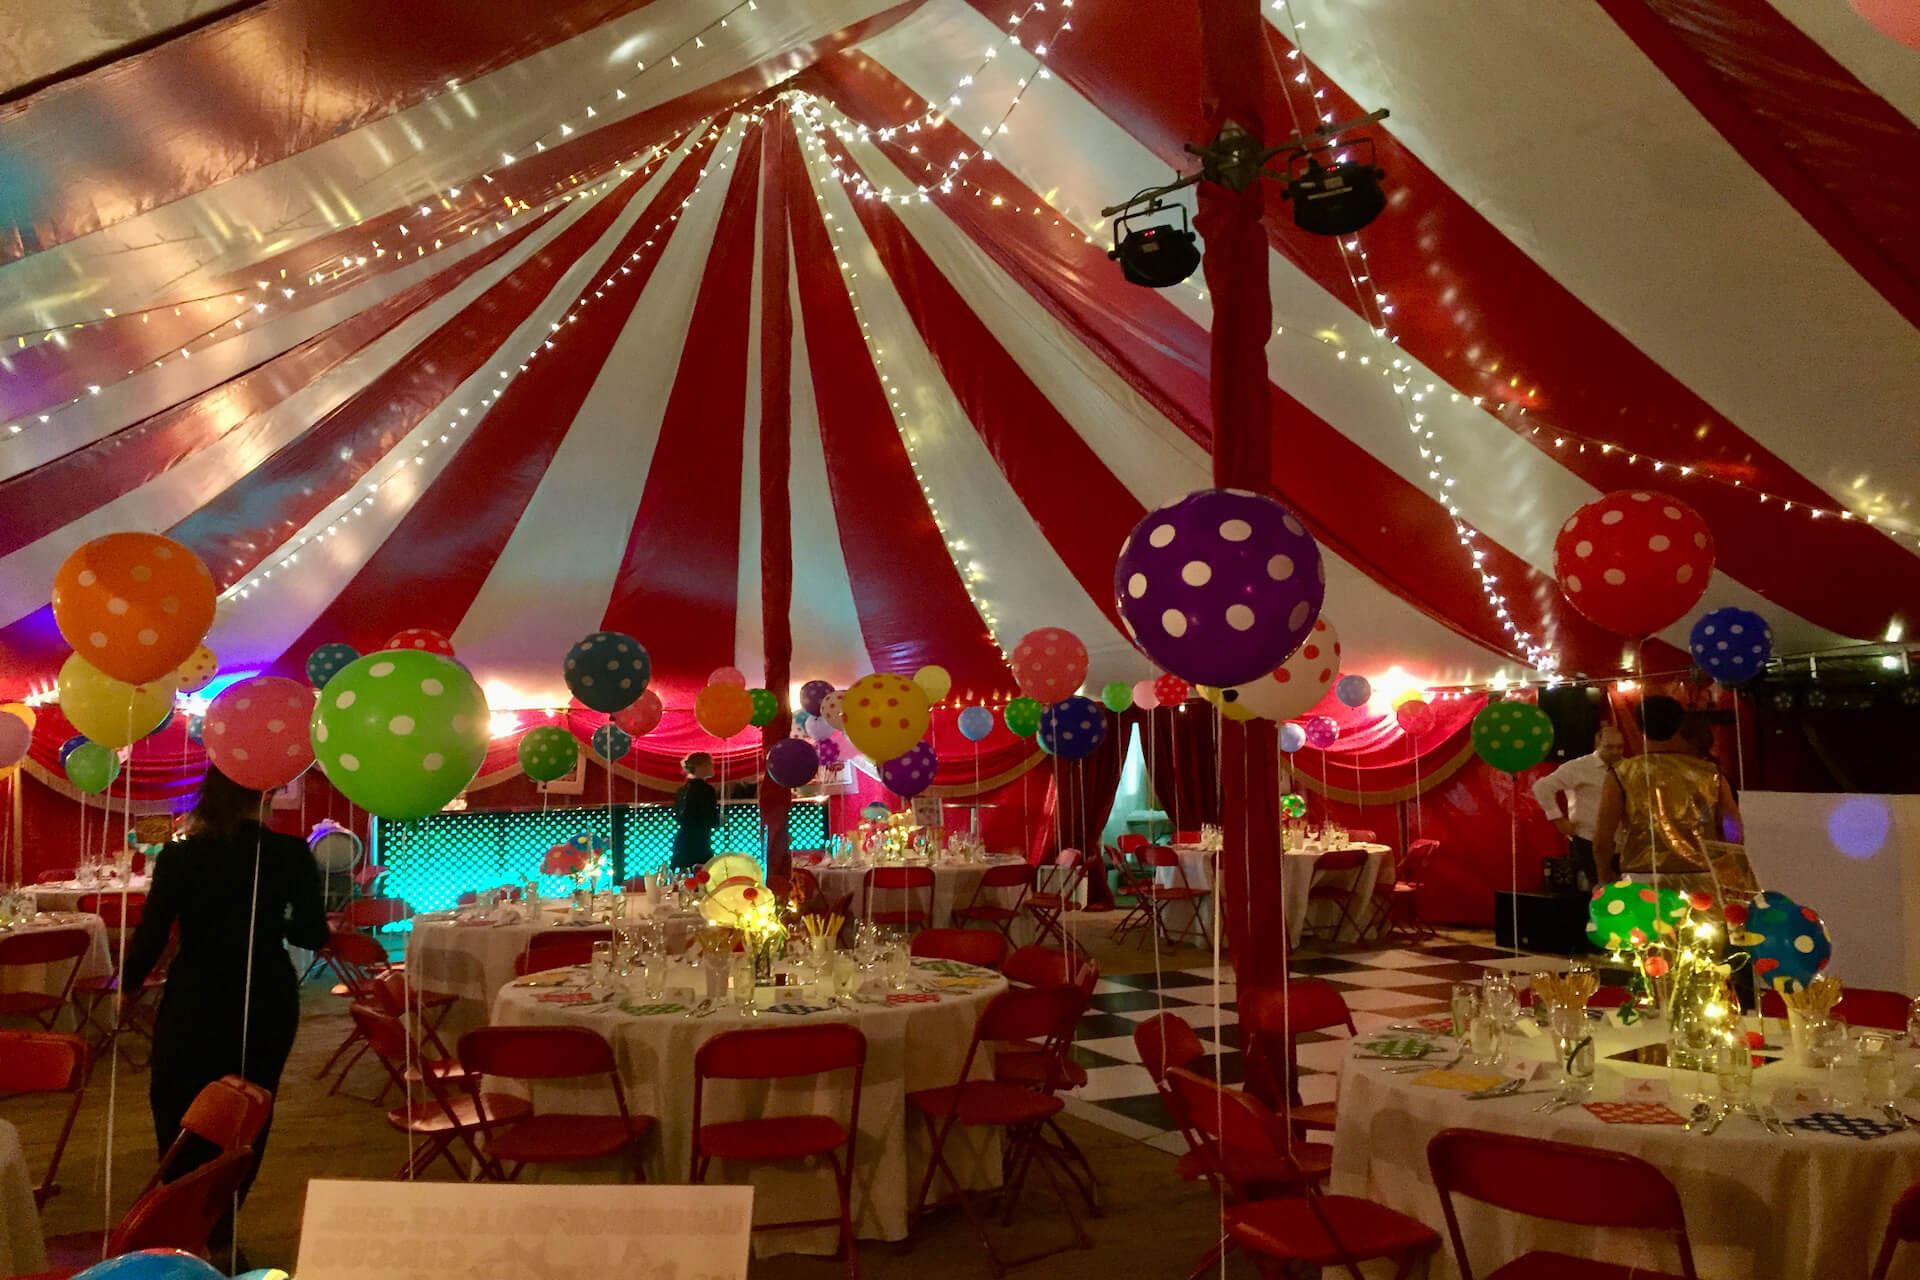 Best circus theme party UK